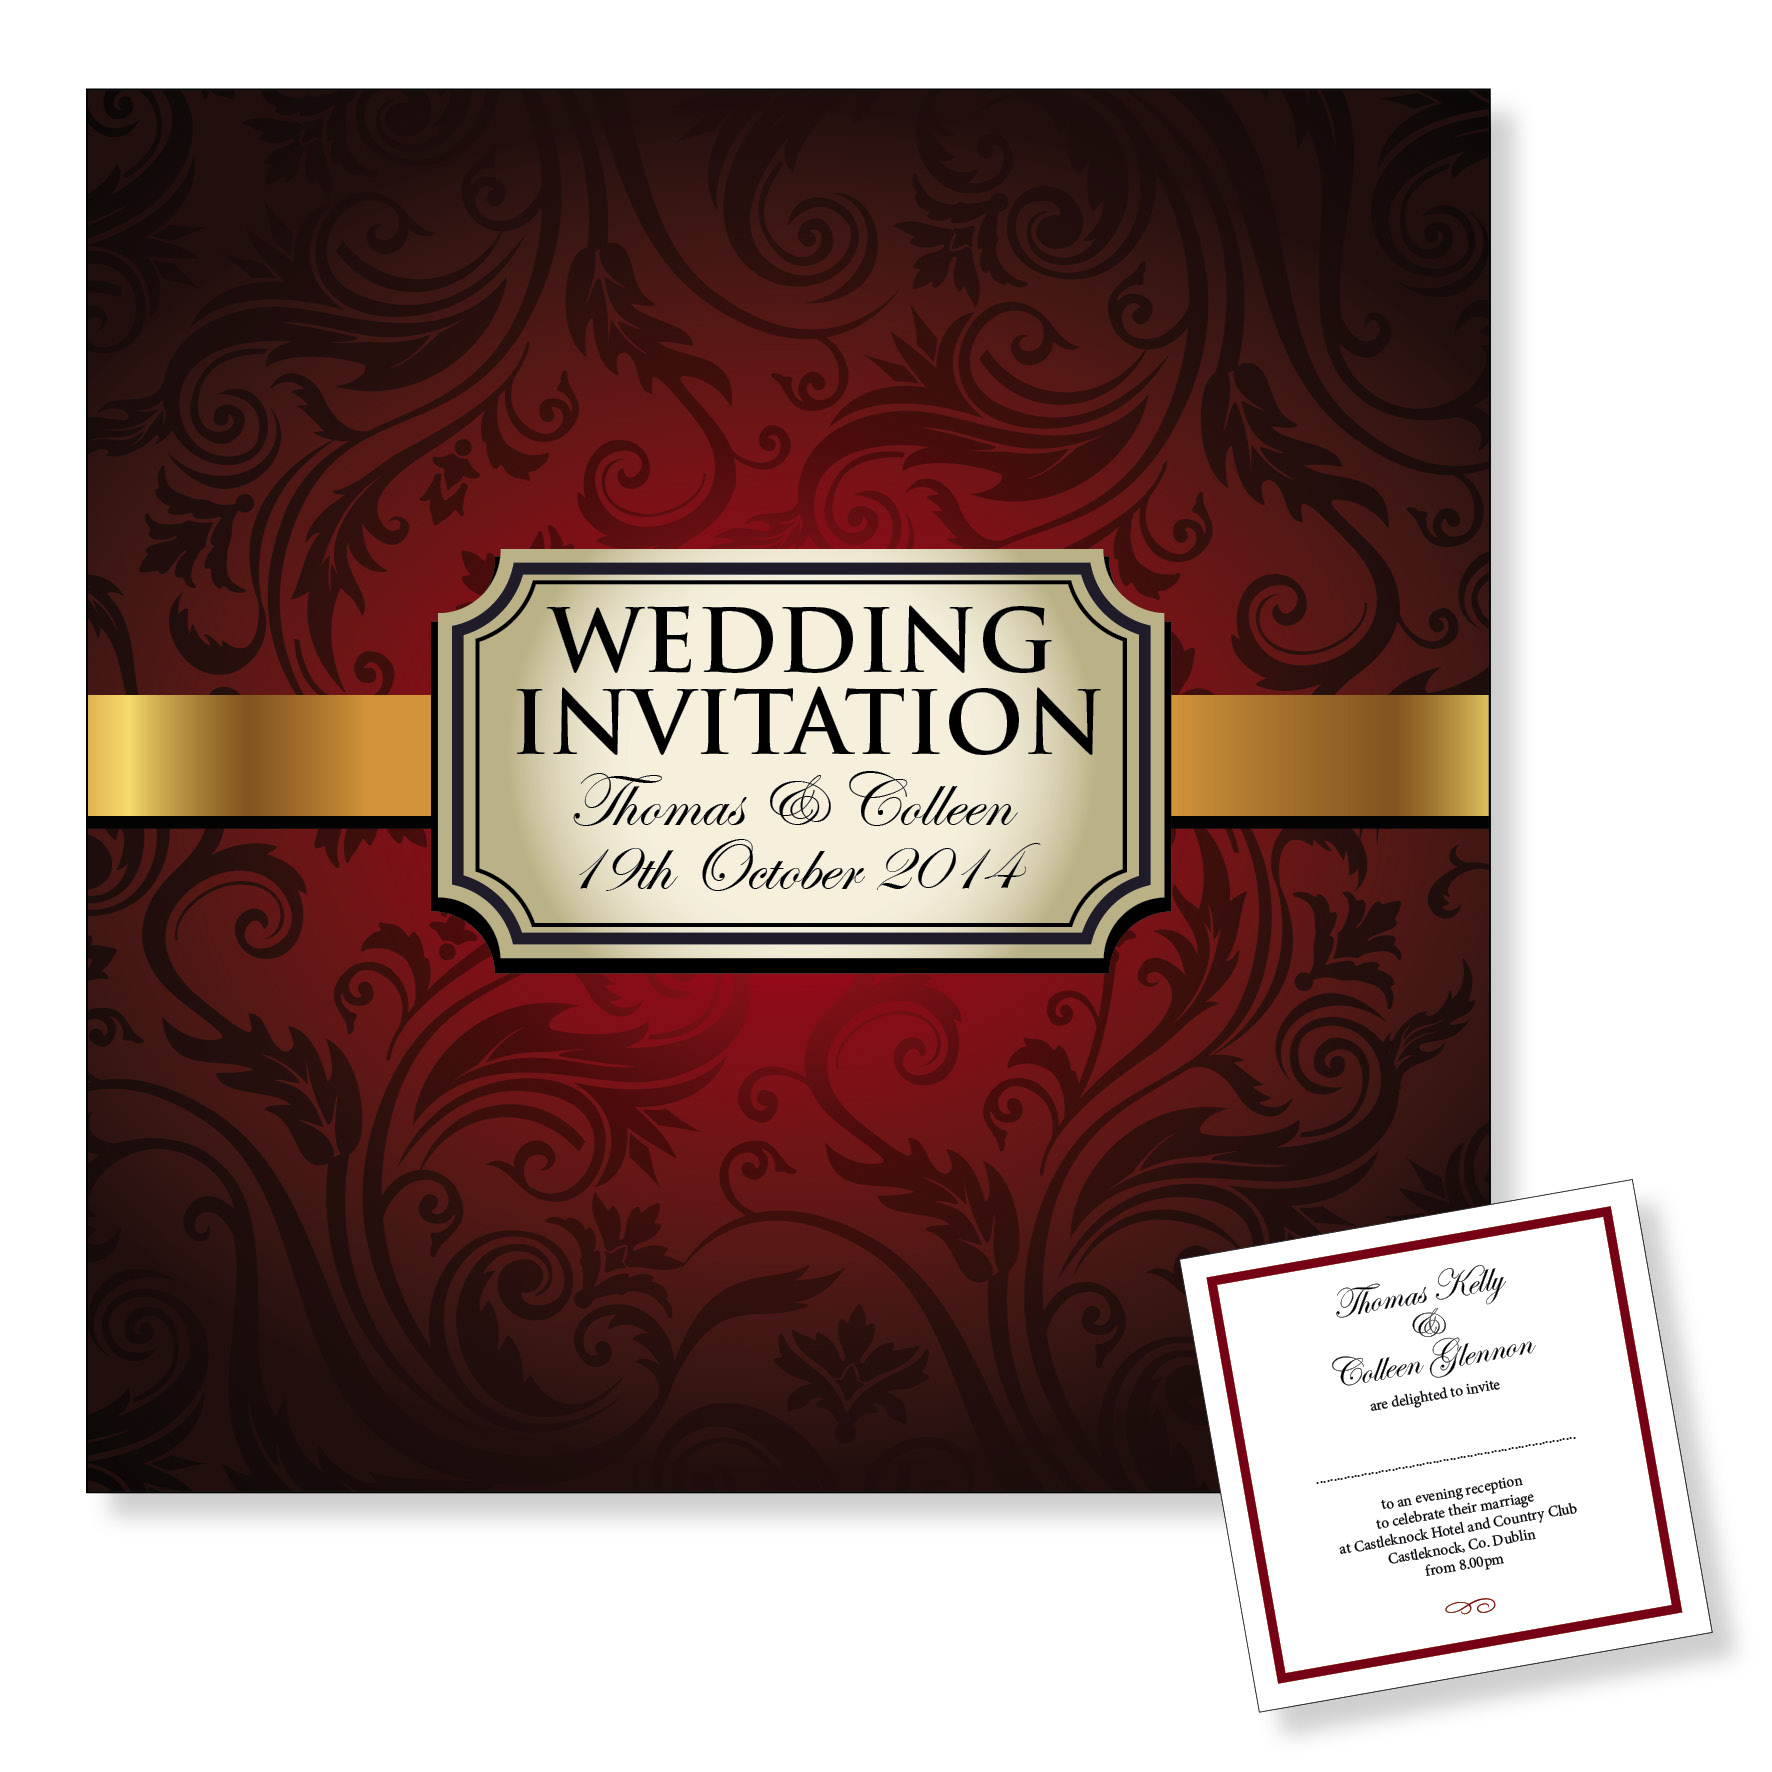 Evening wedding invitation - Red vintage